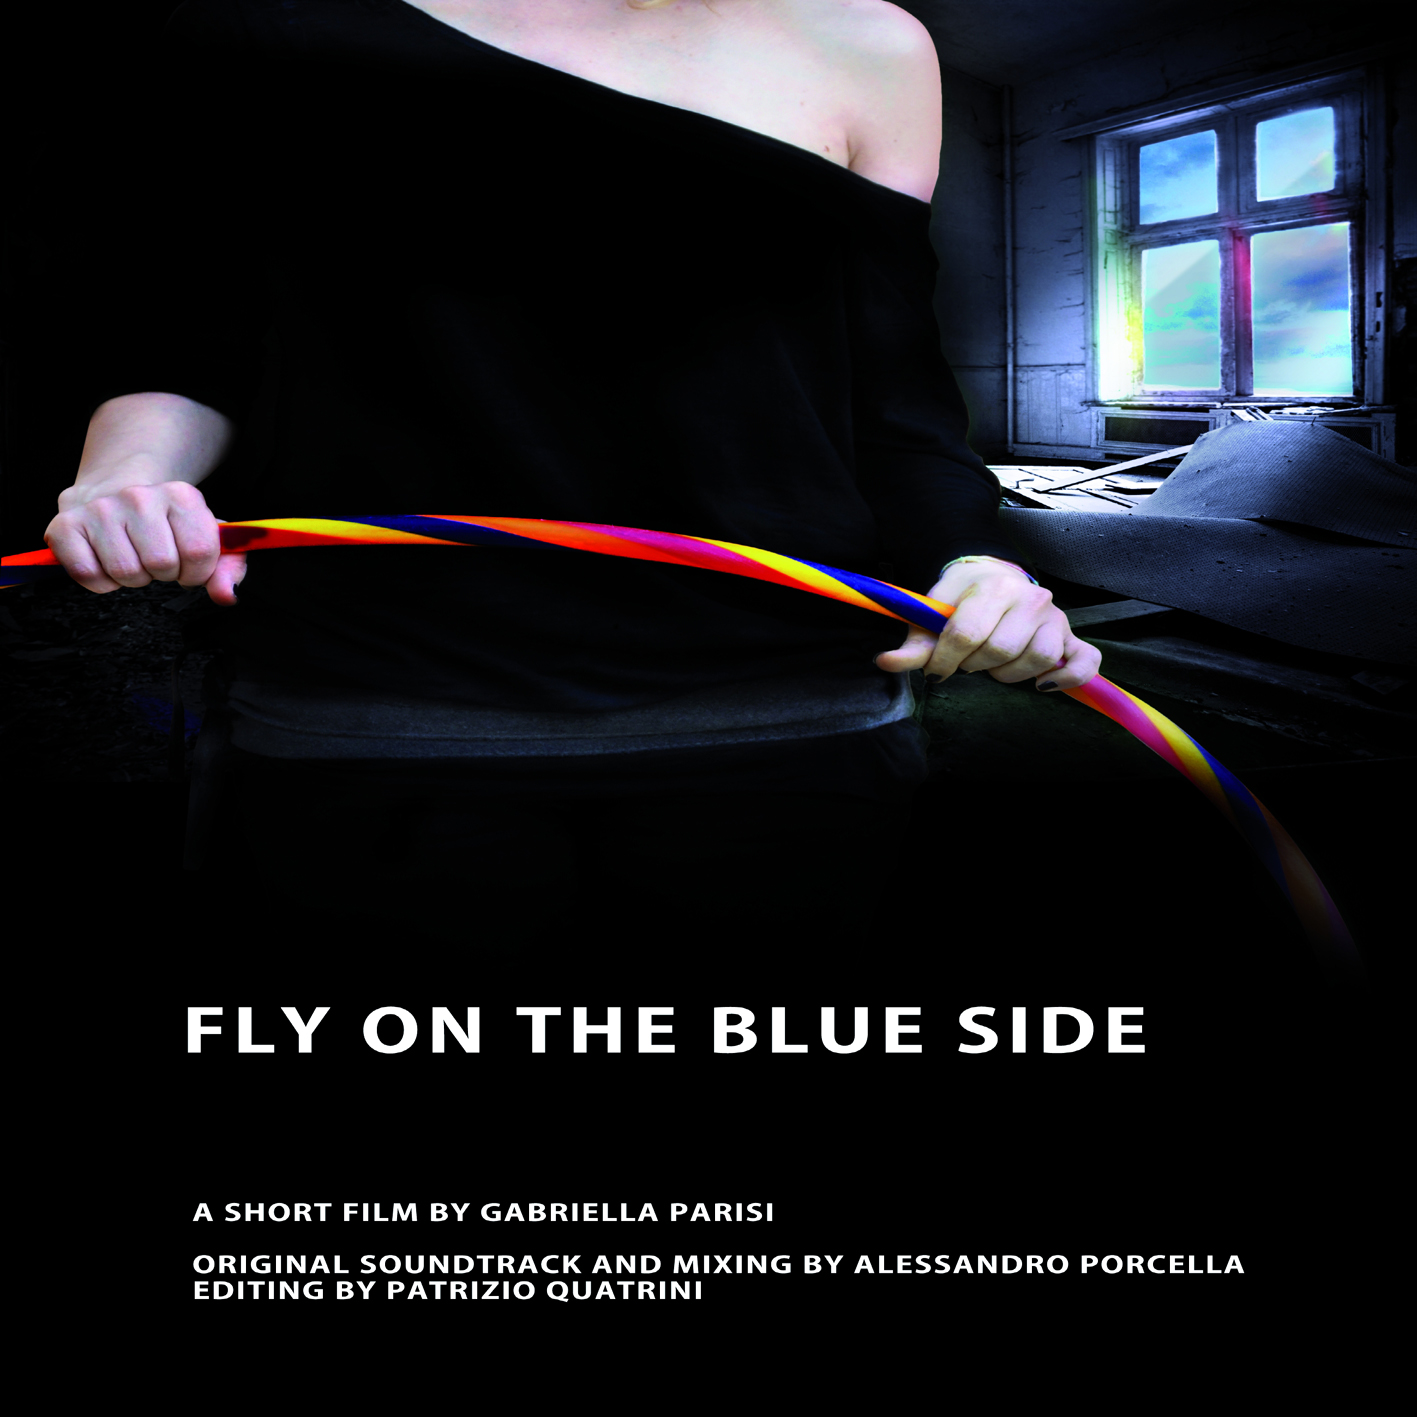 ALESSANDRO PORCELLA Fly on the blue side